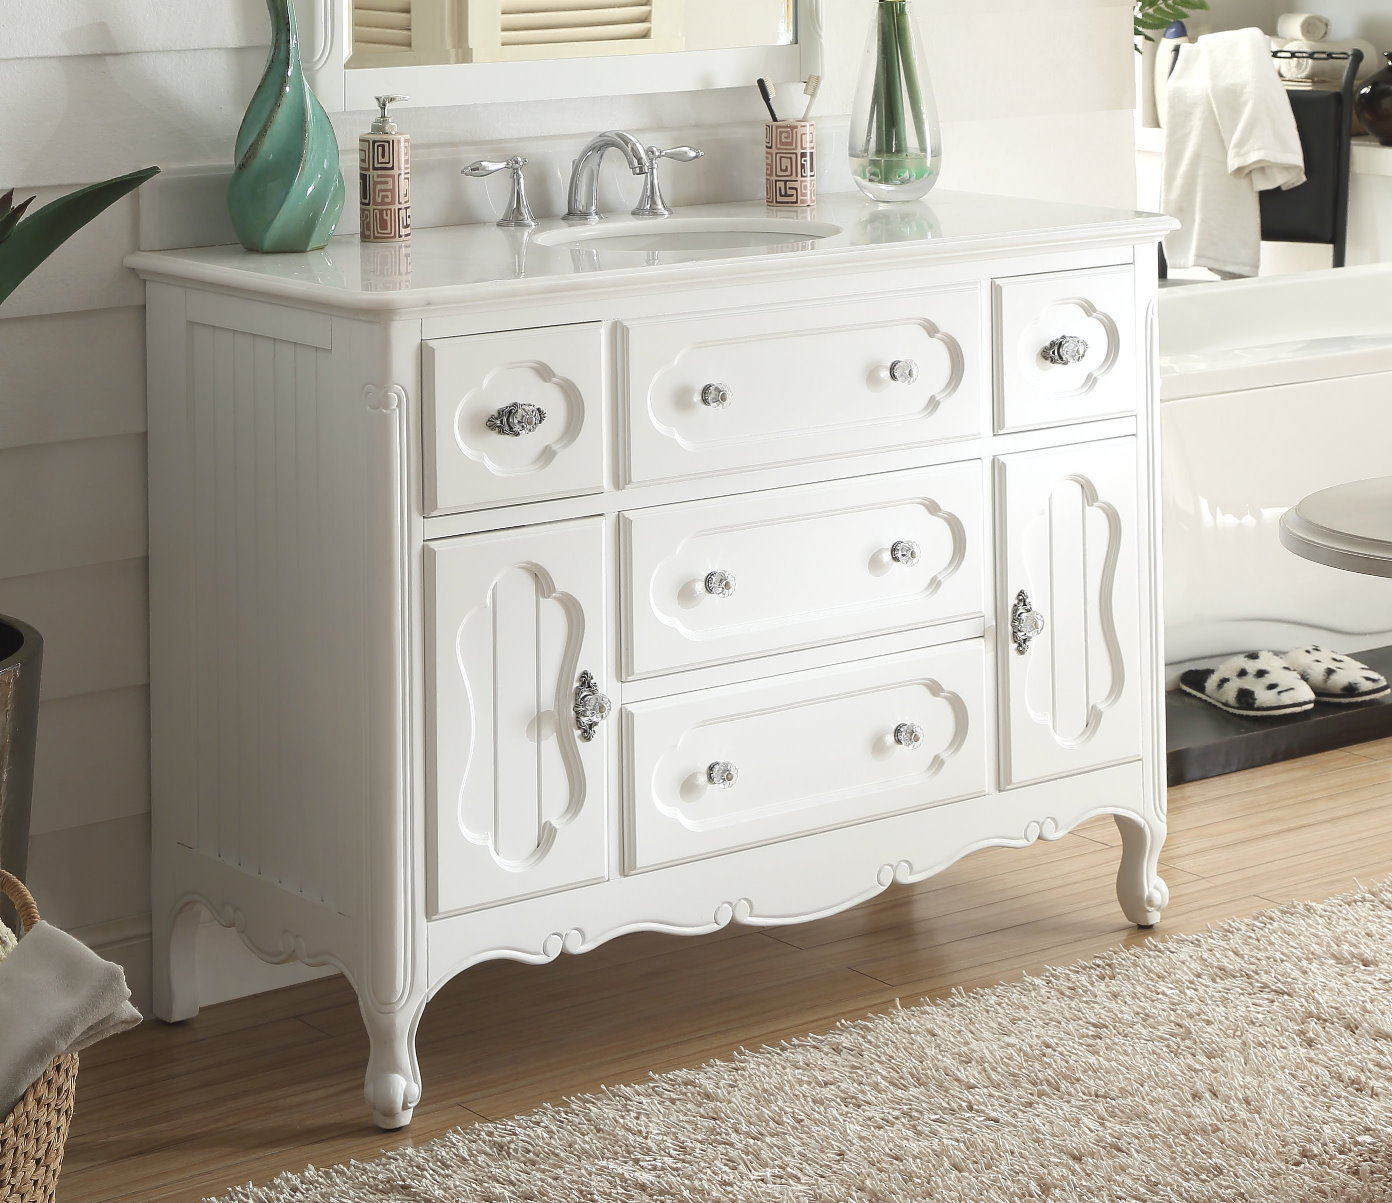 48 inch antique cottage bathroom vanity white finish white marble top